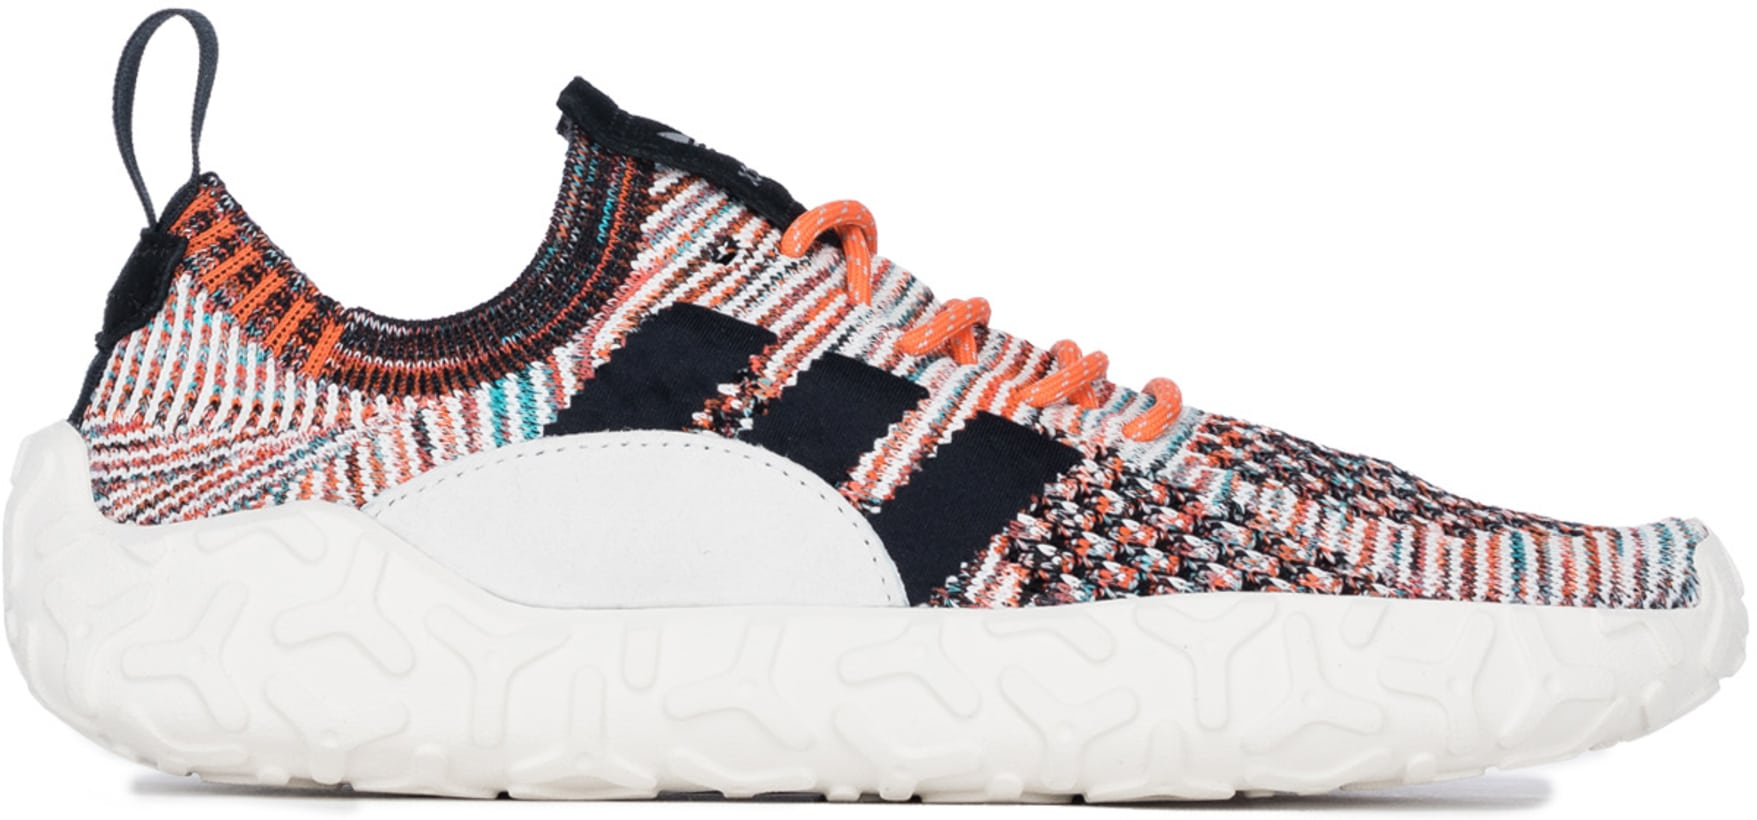 chaussures de séparation 322f0 b7340 adidas Originals - F/22 Primeknit - Orange/Noir/Noir